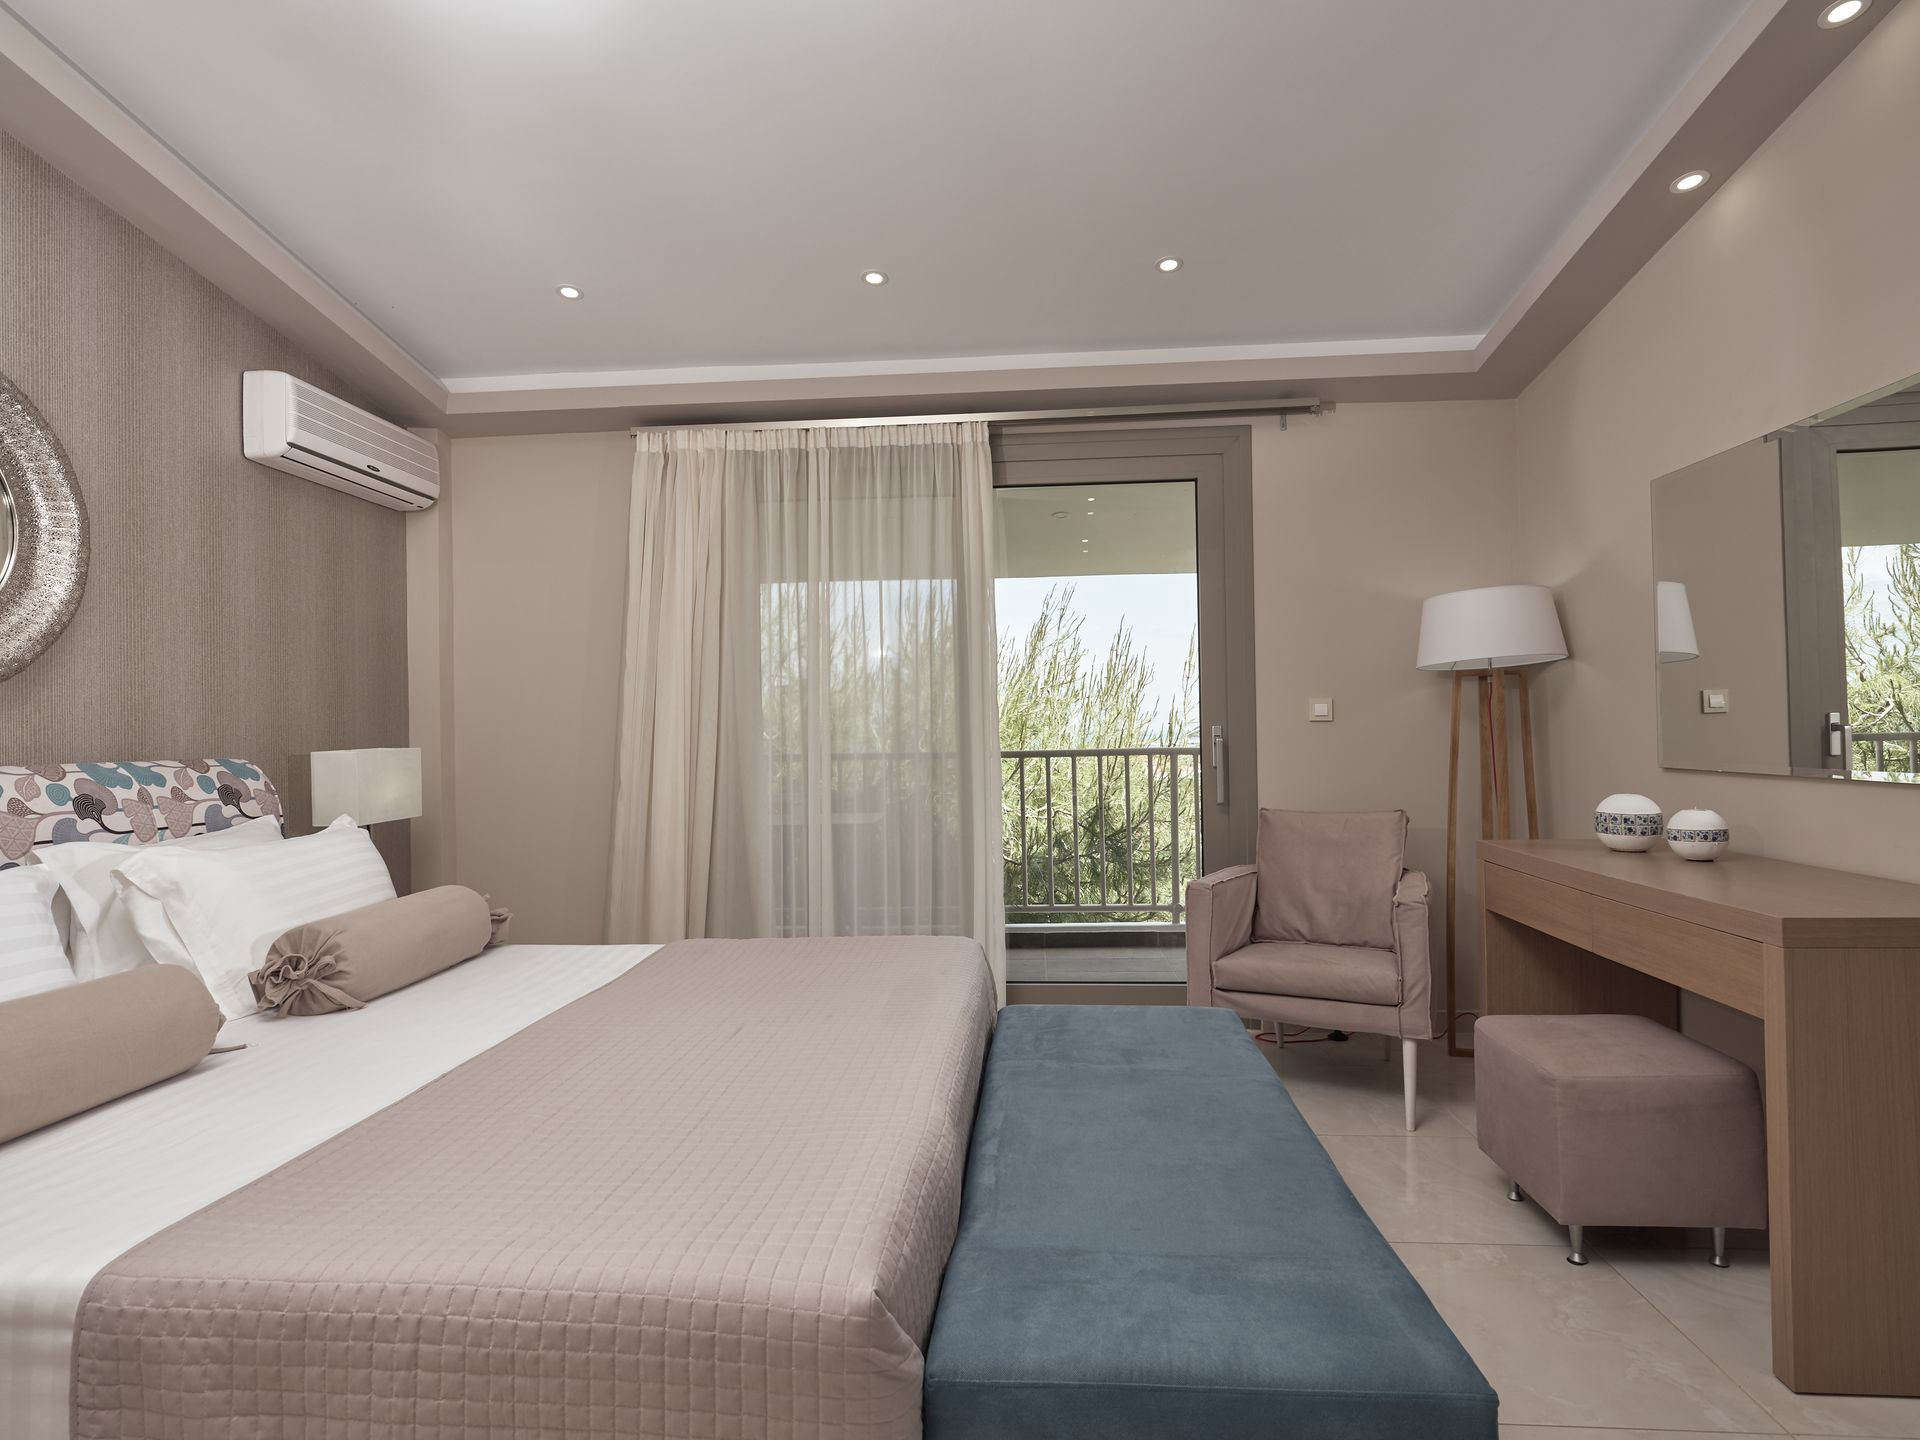 Koukounaria Luxury Room for 2 pax